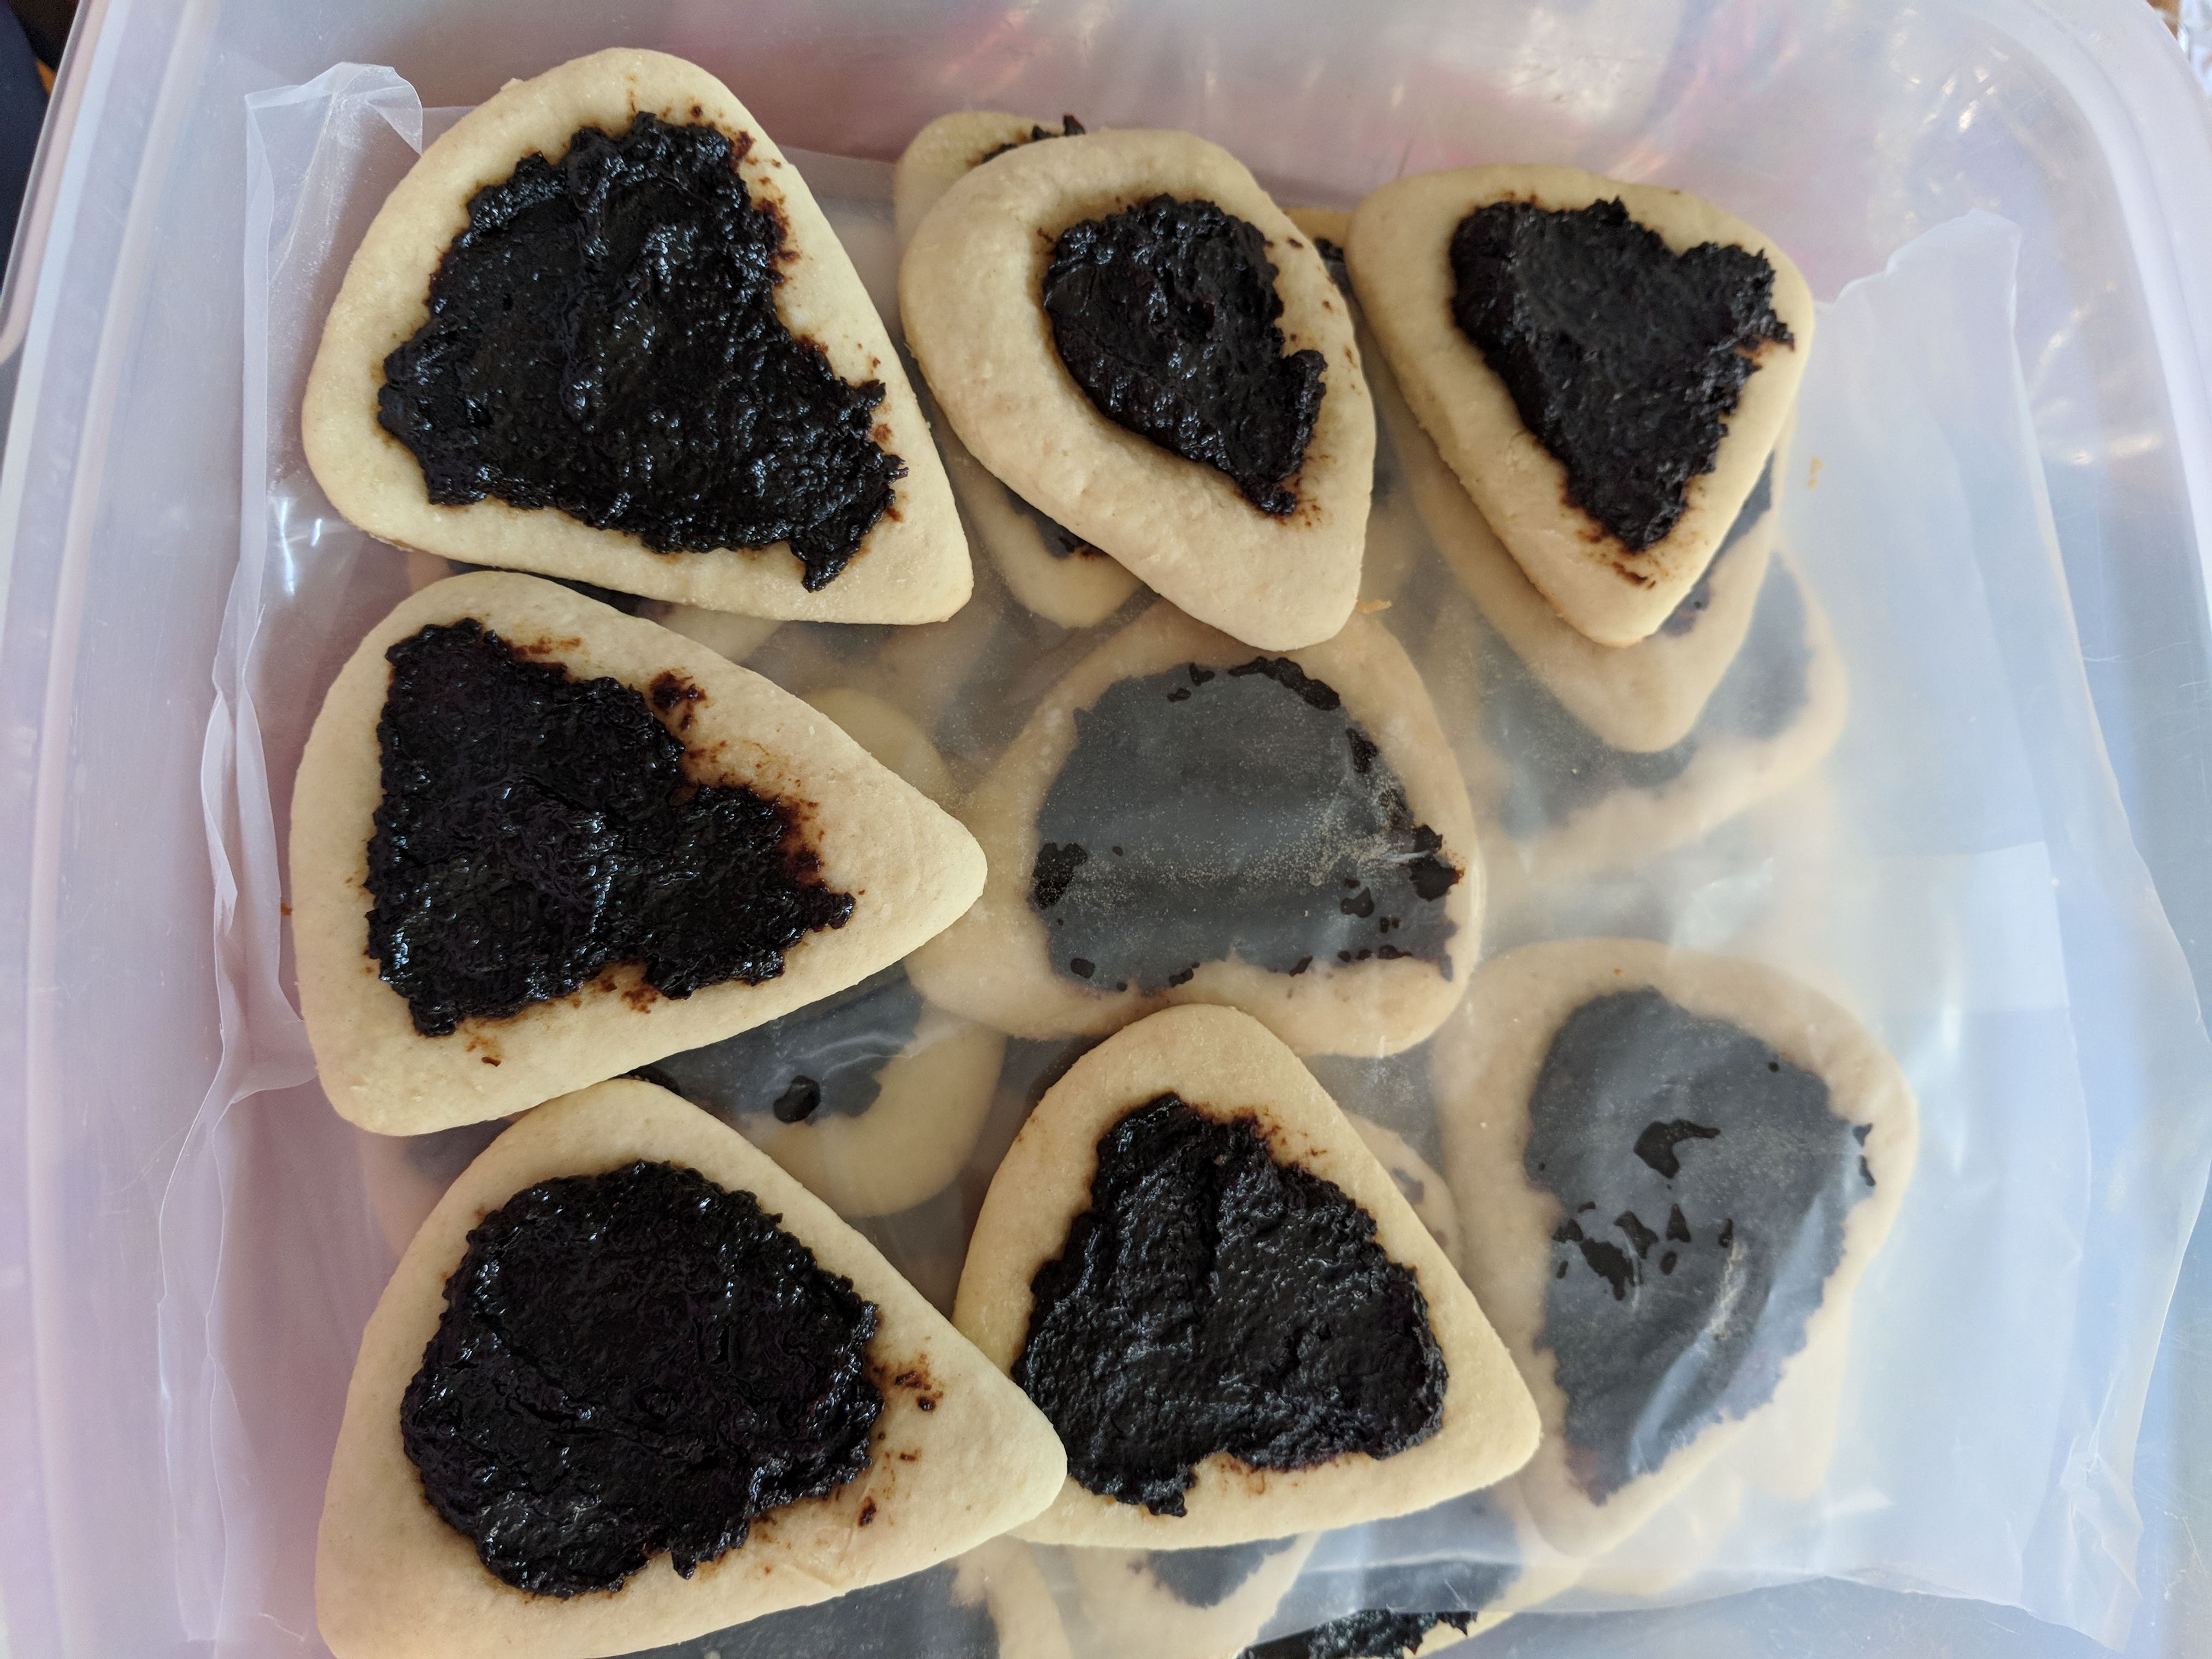 Purim Hamantaschen with Prune Filling